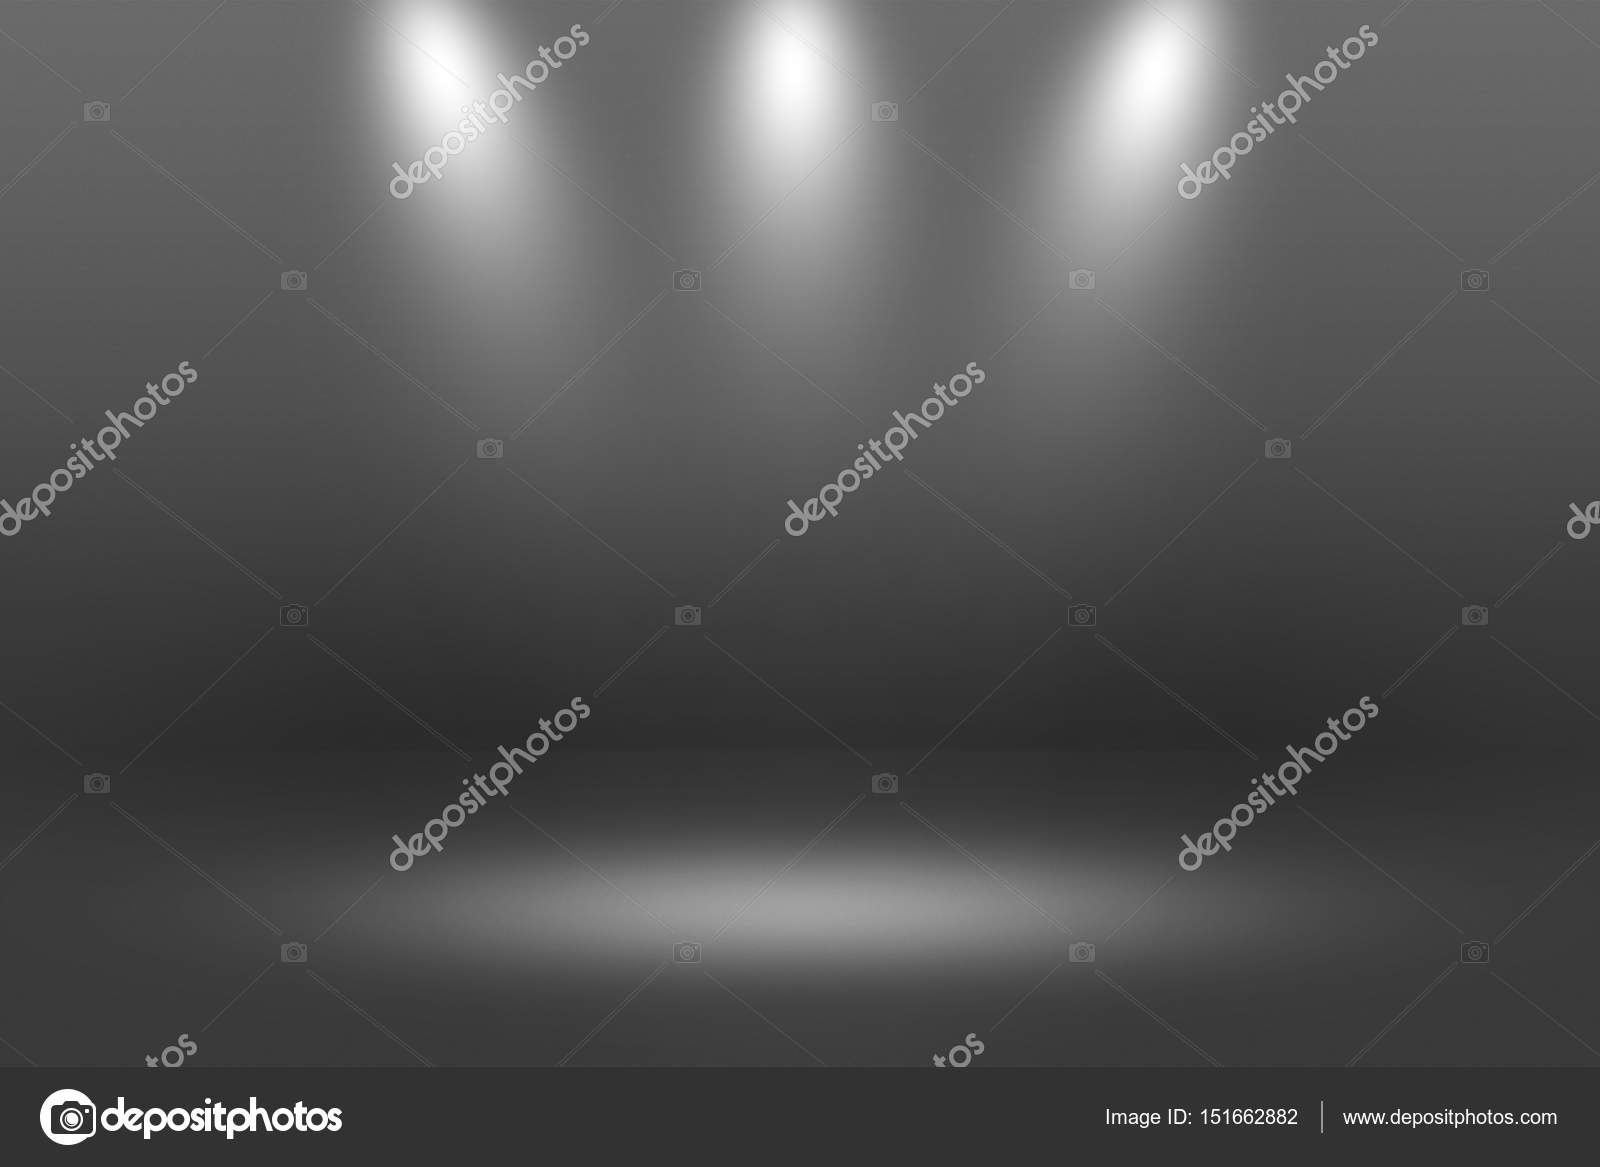 Pavimento Scuro O Chiaro : Prodotto showscase spotlight background pavimento scuro chiaro